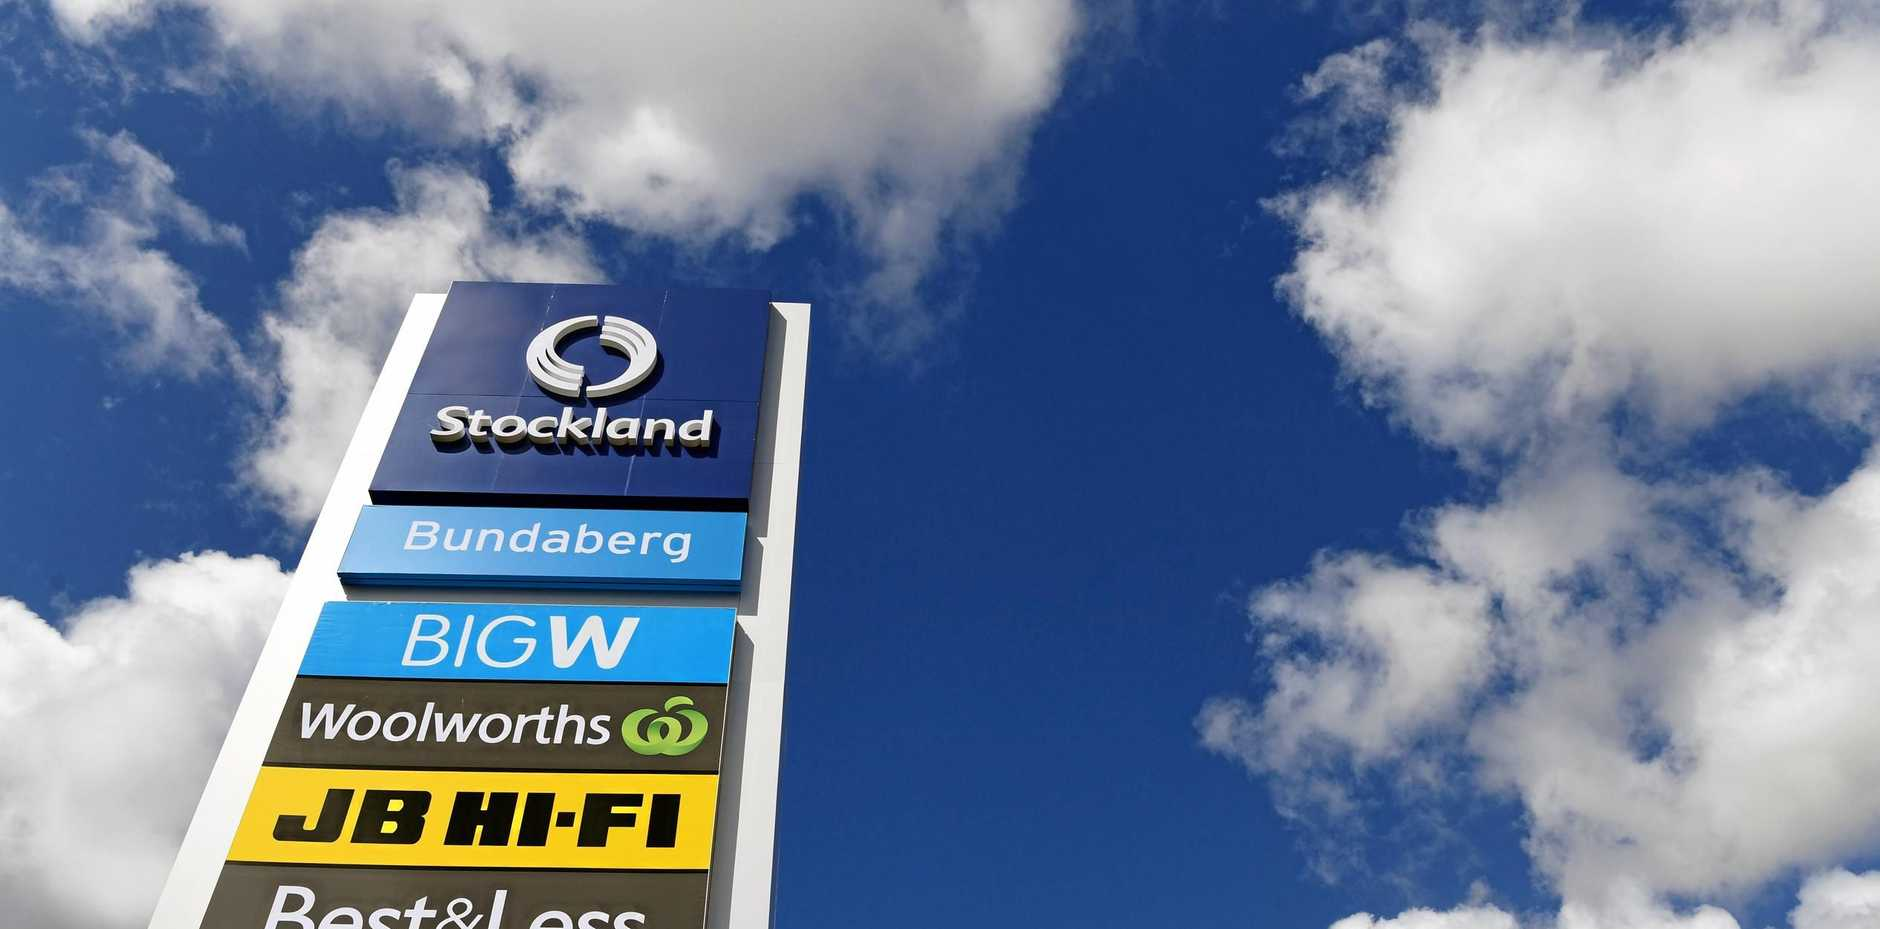 SOAKING UP THE SUN: Stockland Bundaberg is installing a solar power system on its rooftop.